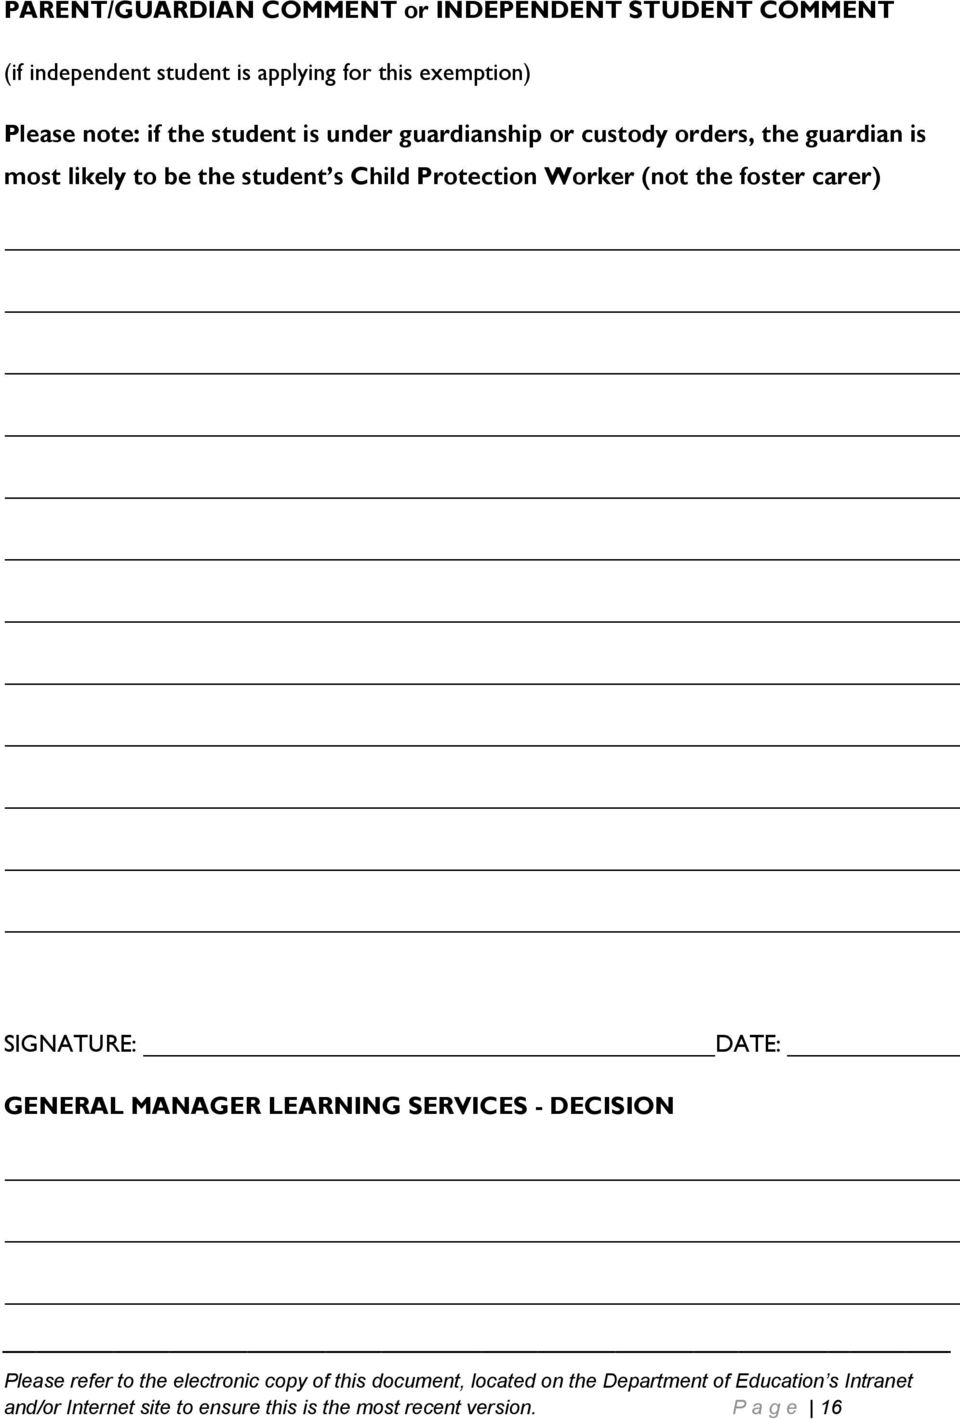 (nt the fster carer) SIGNATURE: DATE: GENERAL MANAGER LEARNING SERVICES - DECISION Please refer t the electrnic cpy f